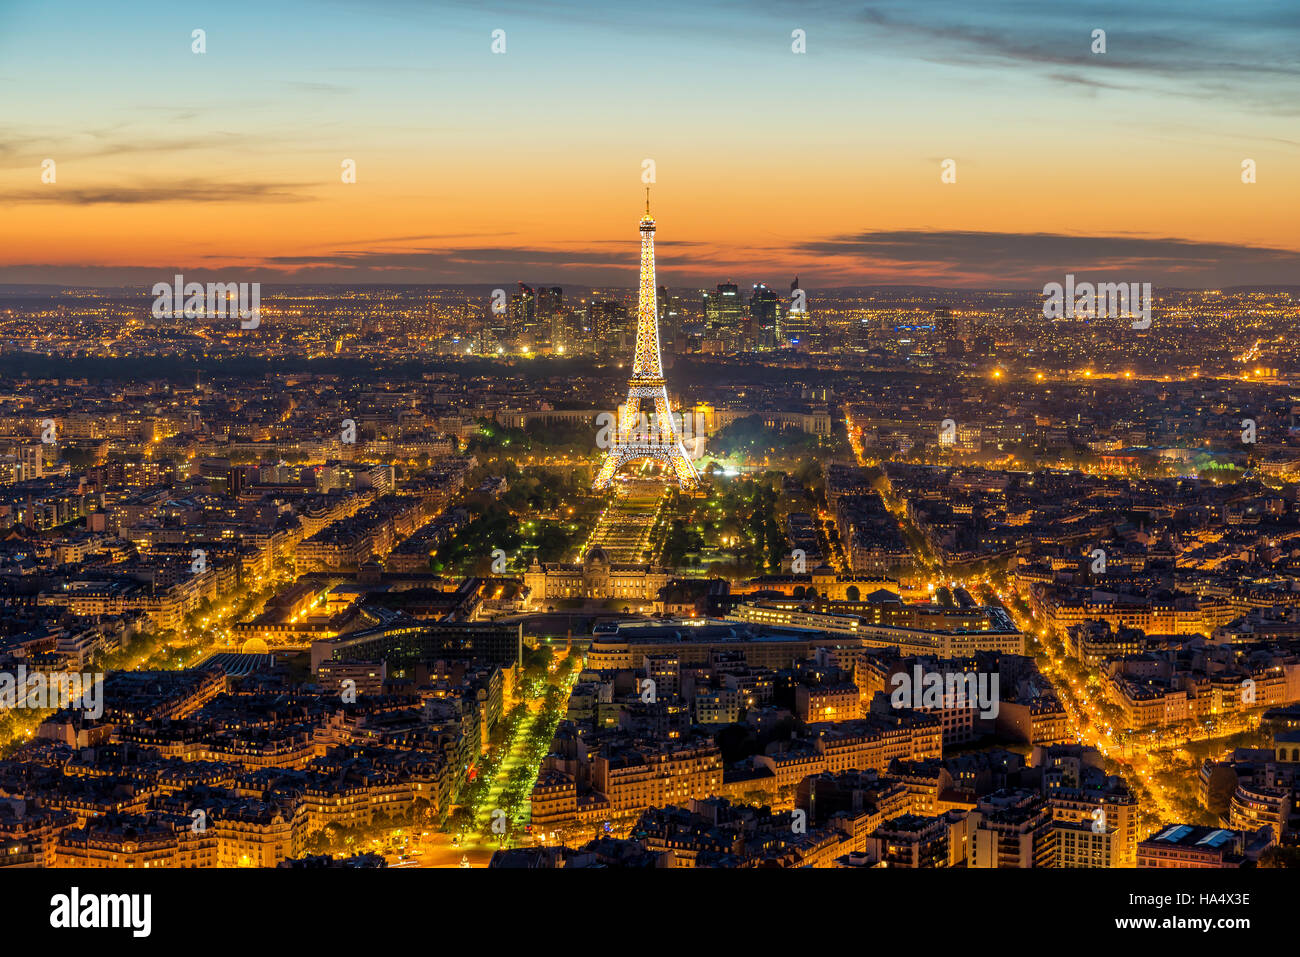 Beautiful view Eiffel tower during light show at dusk, Paris, France. - Stock Image